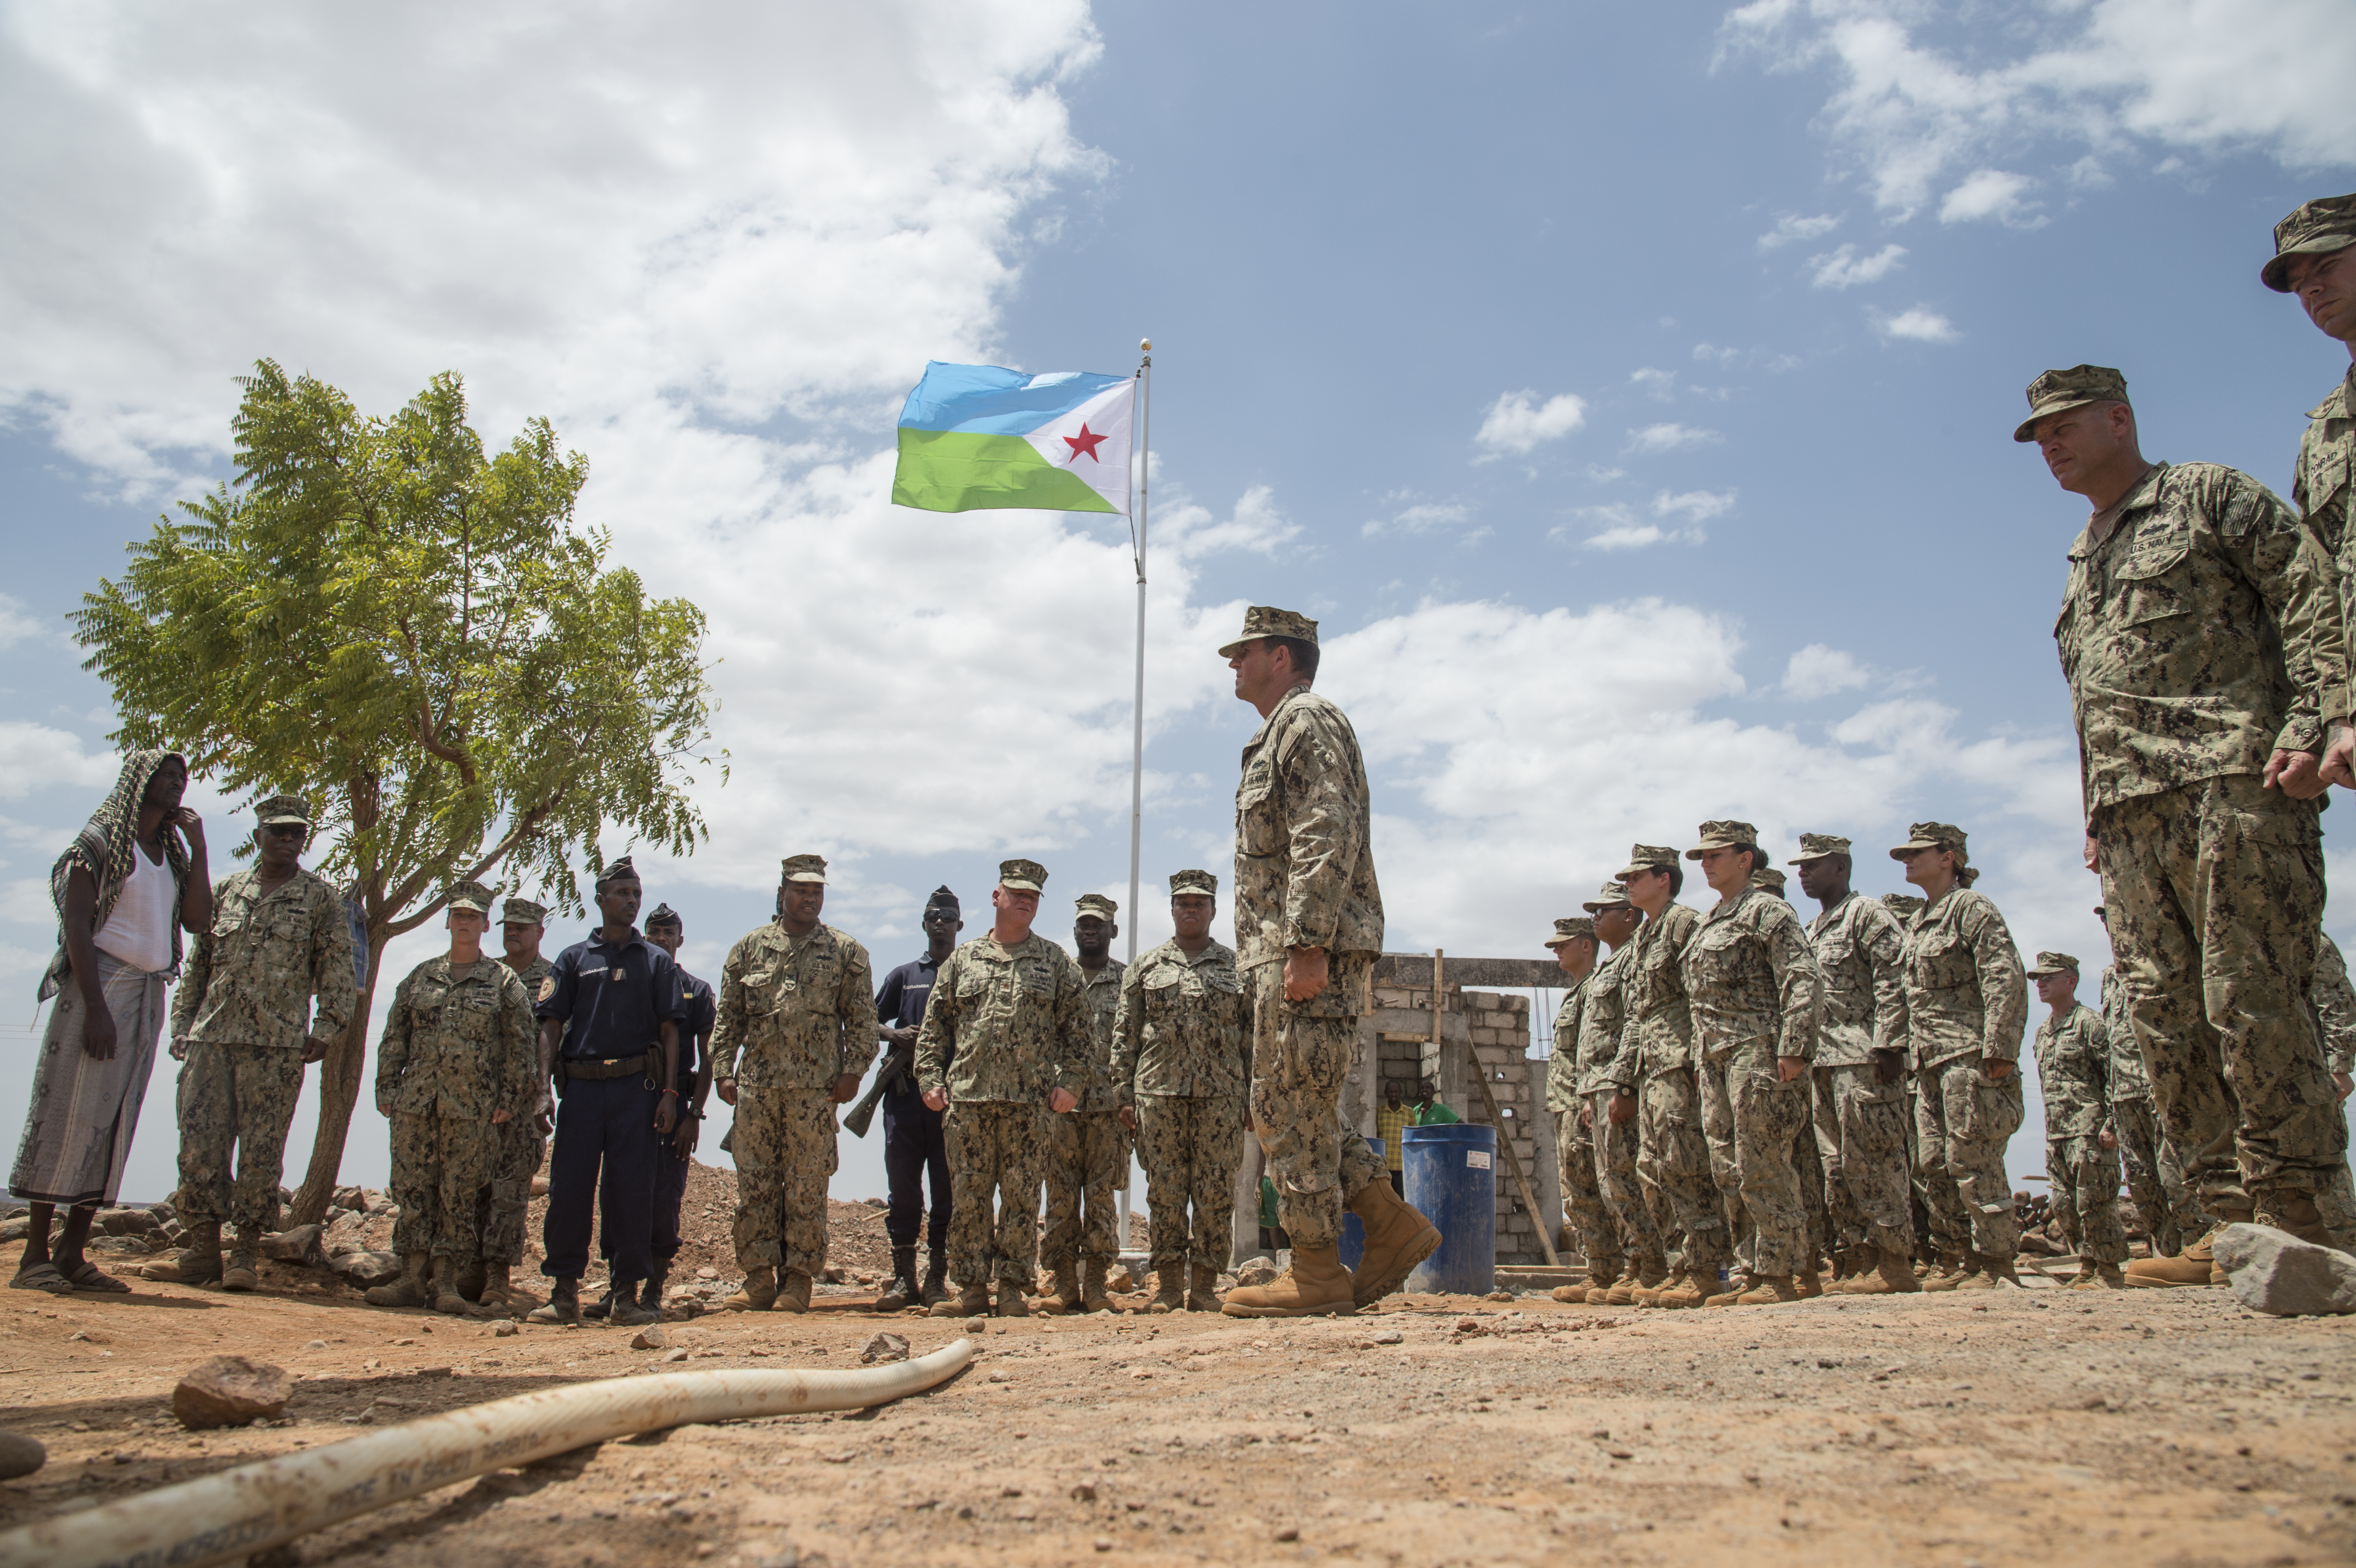 Naval Mobile Construction Battalion ONE officer-in-charge U.S. Navy Lt. Cmdr. Jason Ward introduces village Chief Hassan Diama to Seabees assigned to Combined Joint Task Force-Horn of Africa gathered at a construction site in a remote village in the Arta region of Djibouti during a flag dedication ceremony, Aug. 17, 2017. The project was started by NMCB 1, now replaced by NMCB 133, who will continue working on the project. (U.S. Air National Guard photo by Tech. Sgt. Joseph Harwood)